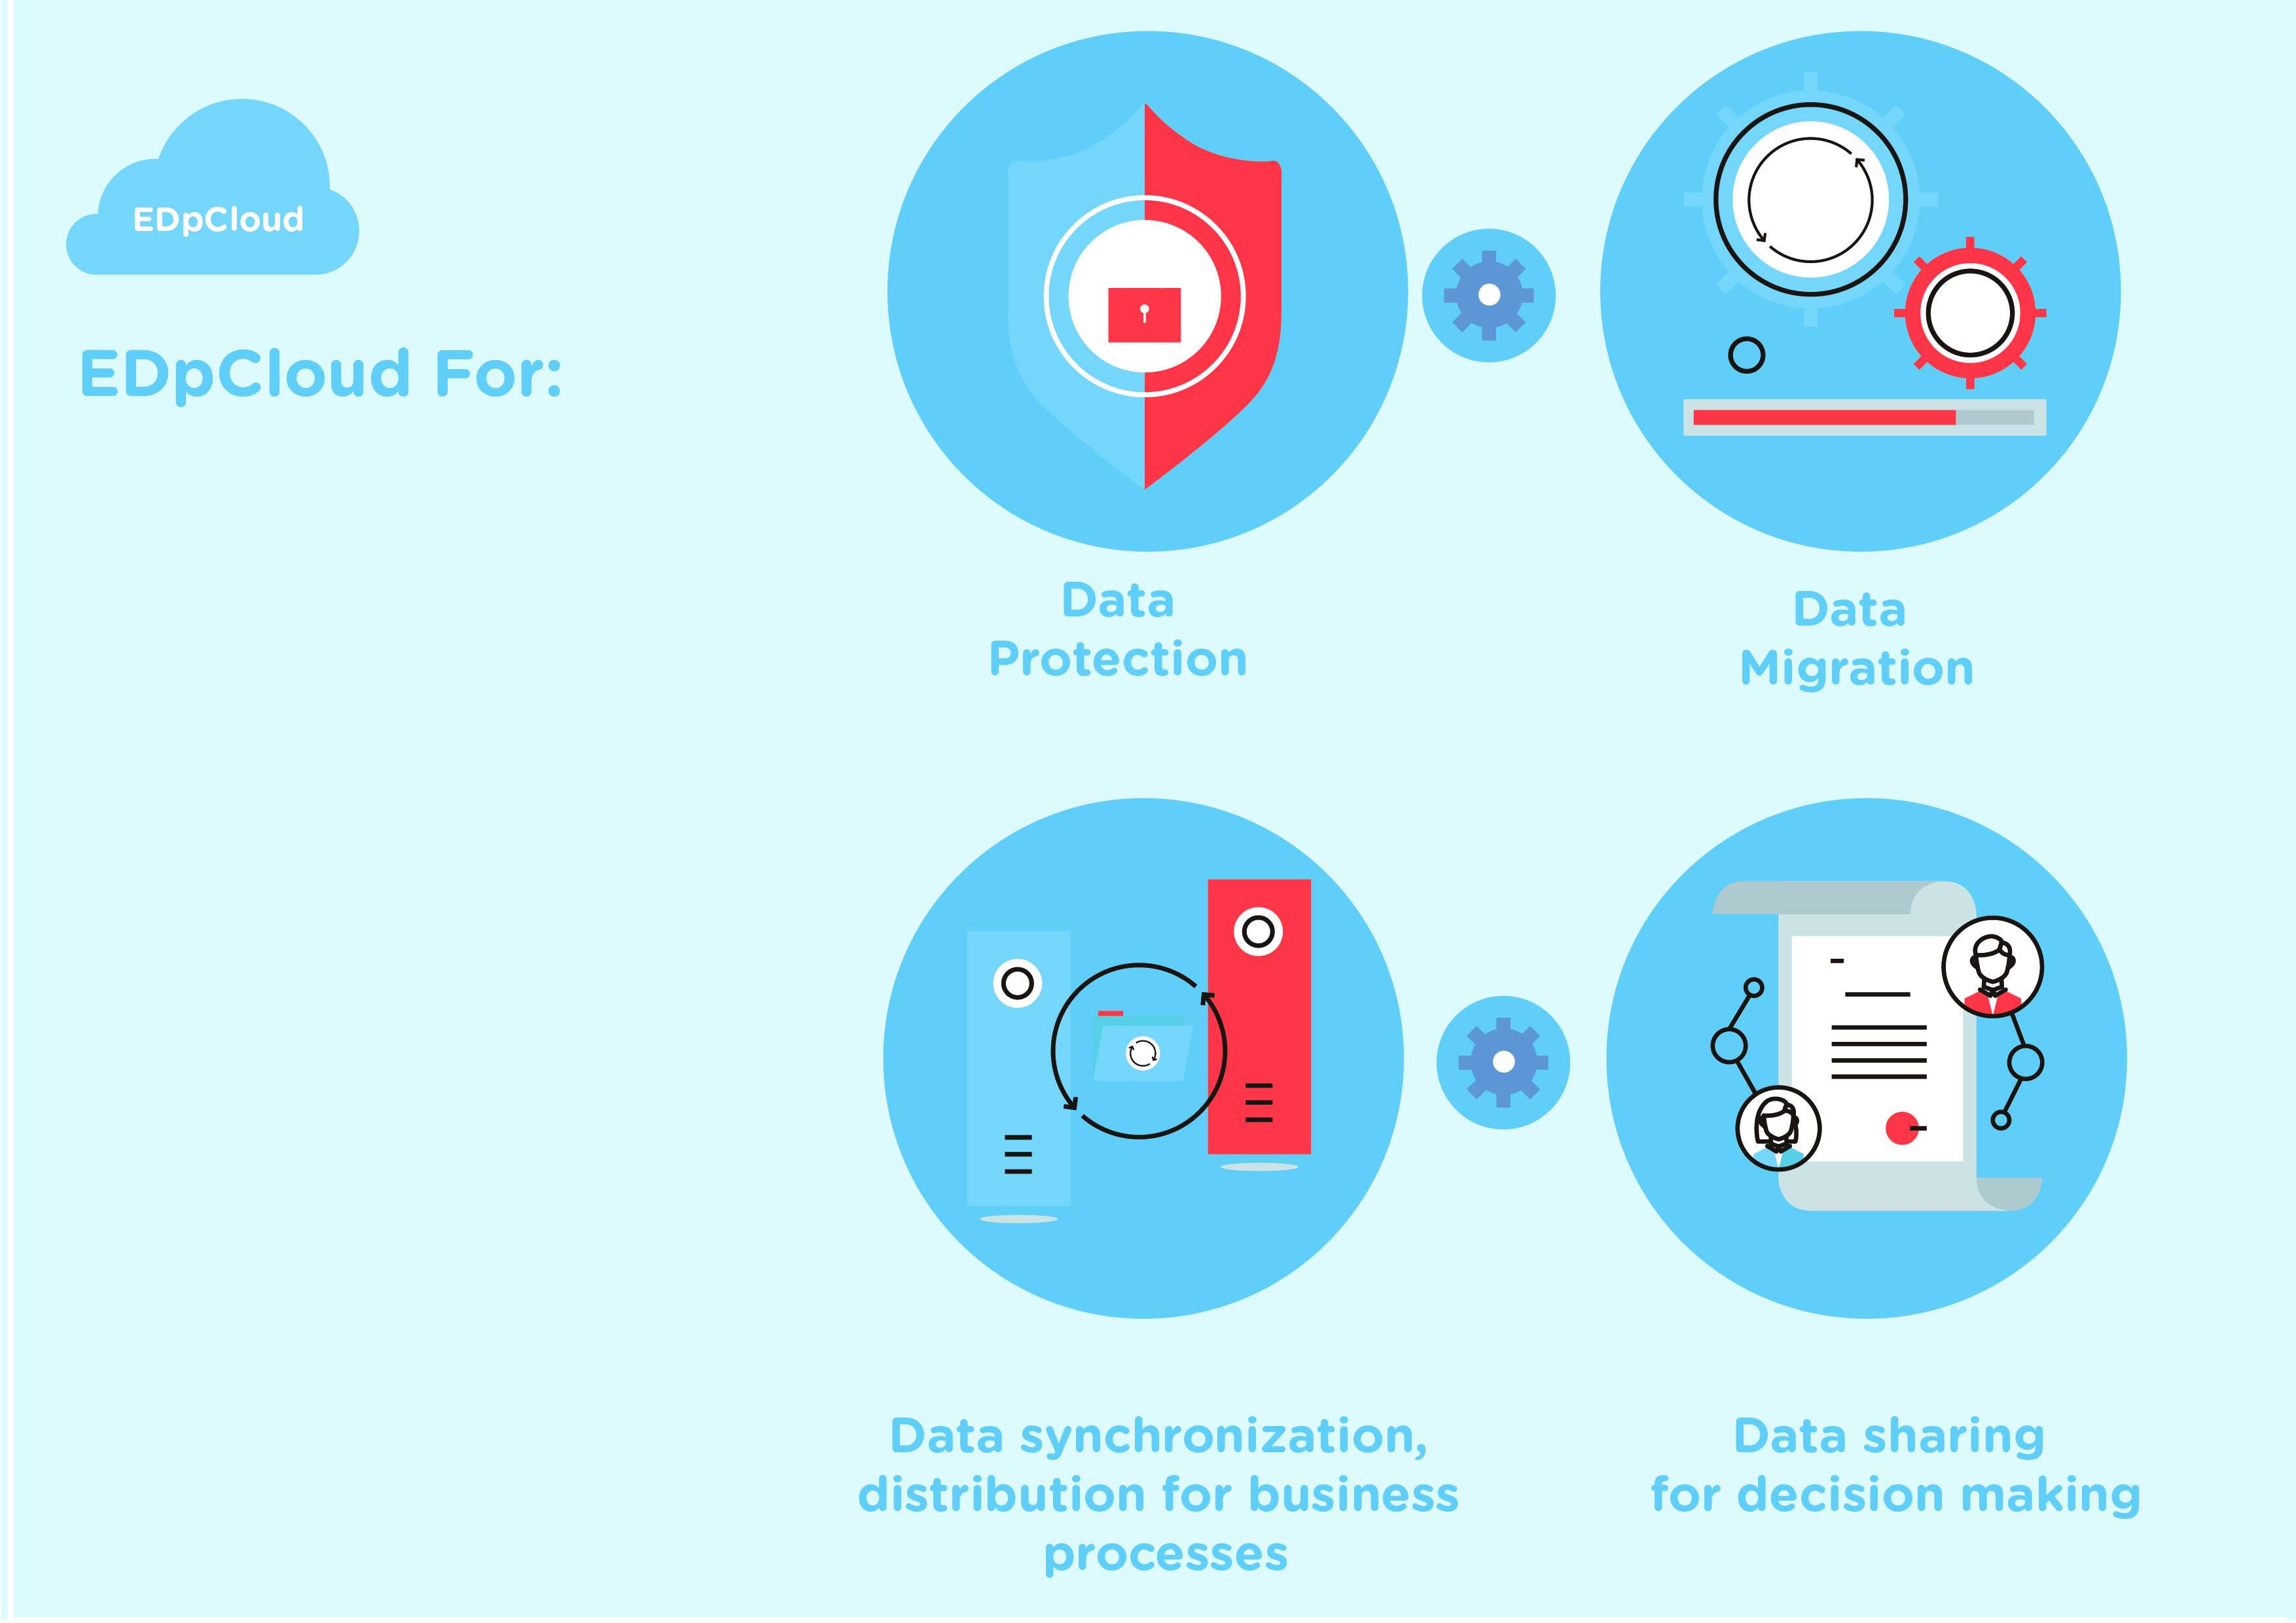 data protection, data migration, file sync